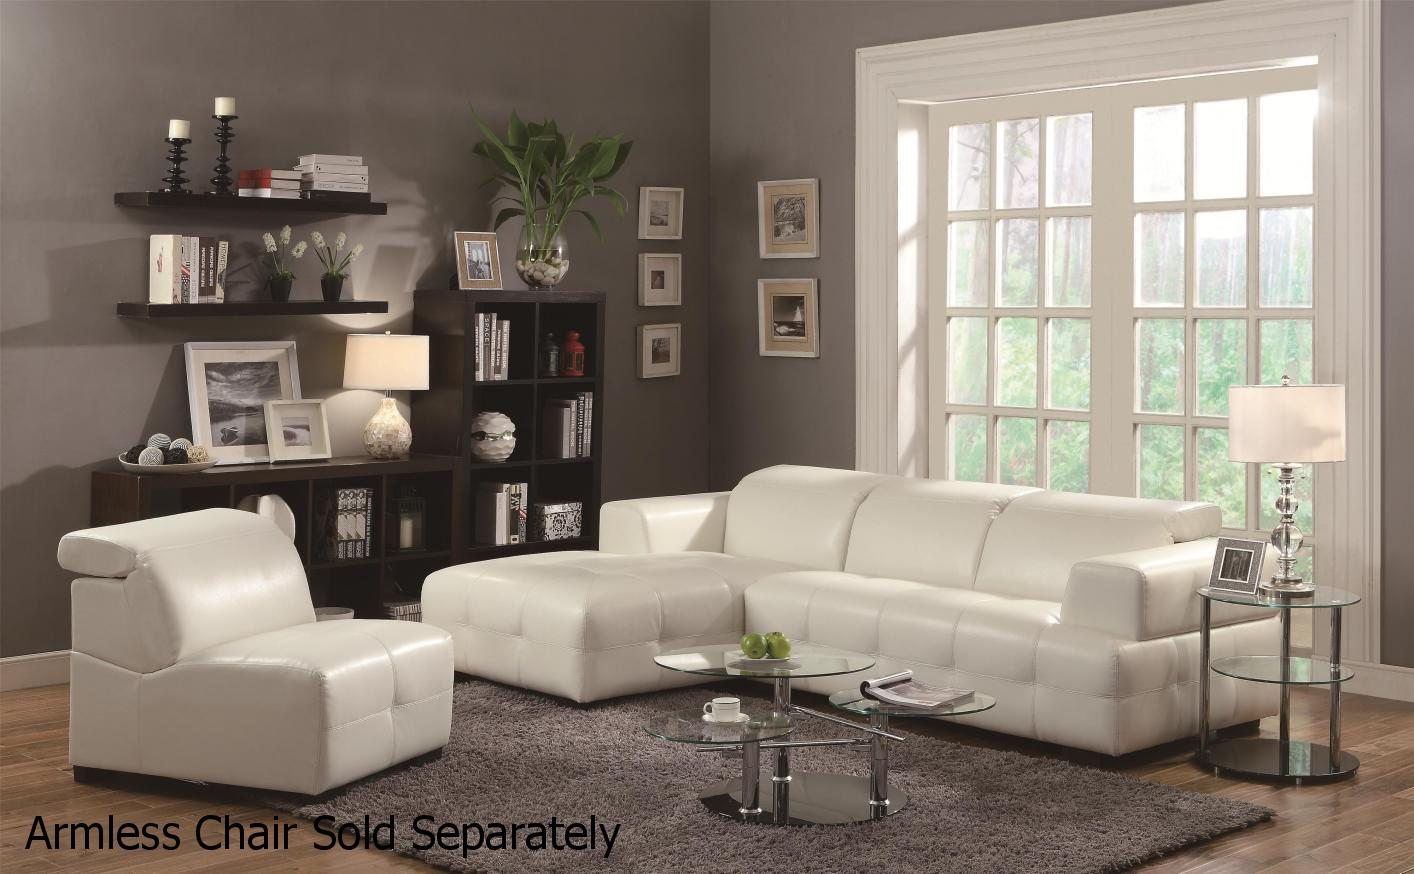 White Leather Sectional Sofa : sectional sofas white - Sectionals, Sofas & Couches